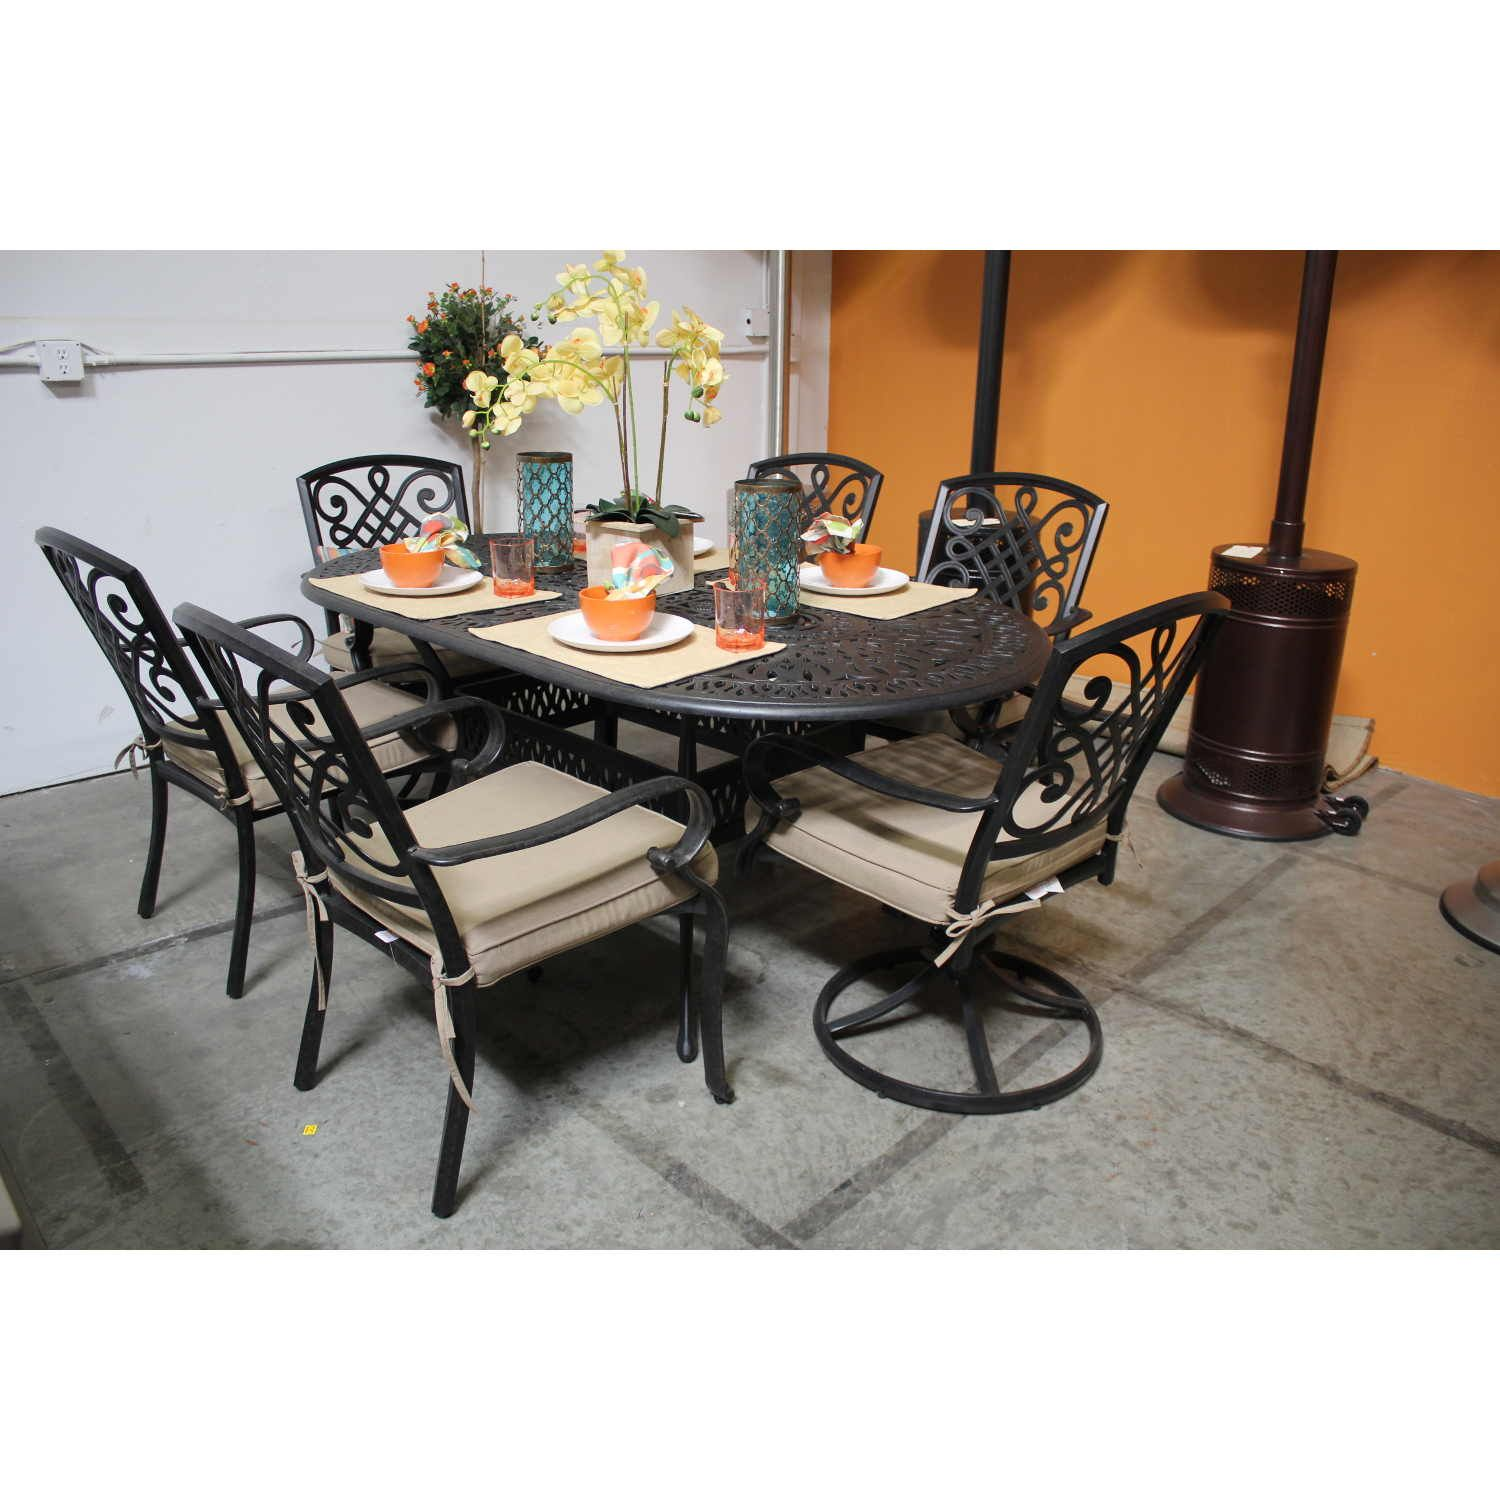 7 Pcdining Set #patio #patiofurniture #bridgetownchair Cool Cheap Dining Room Tables For Sale Design Decoration